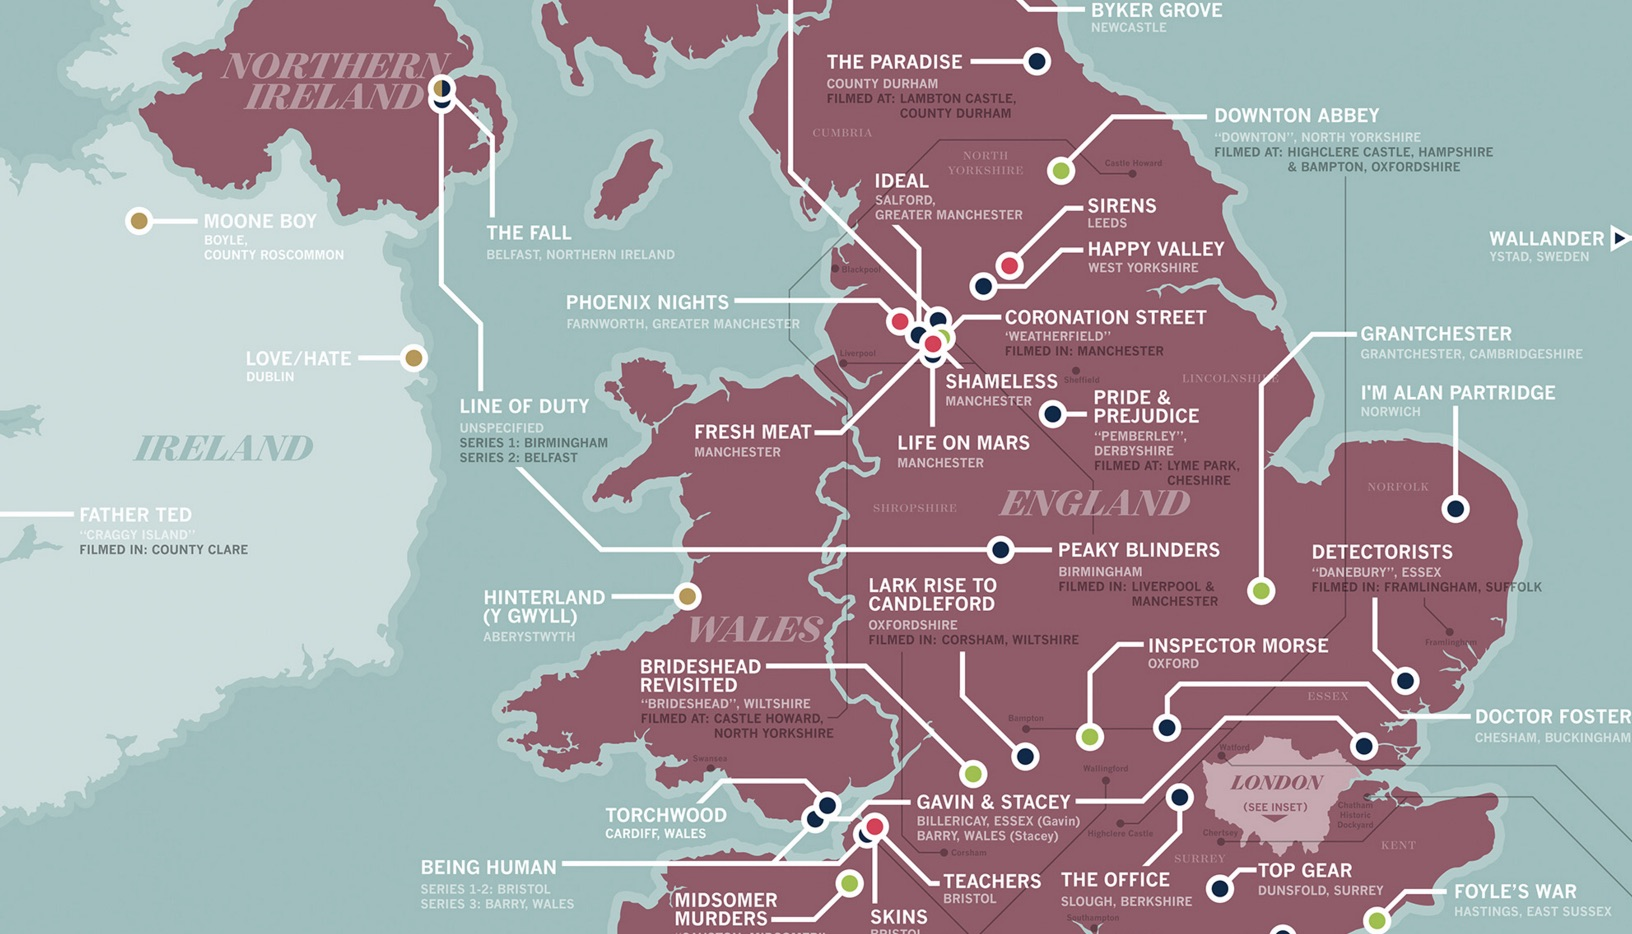 Incredible TV location map of the UK featuring Doctor Who